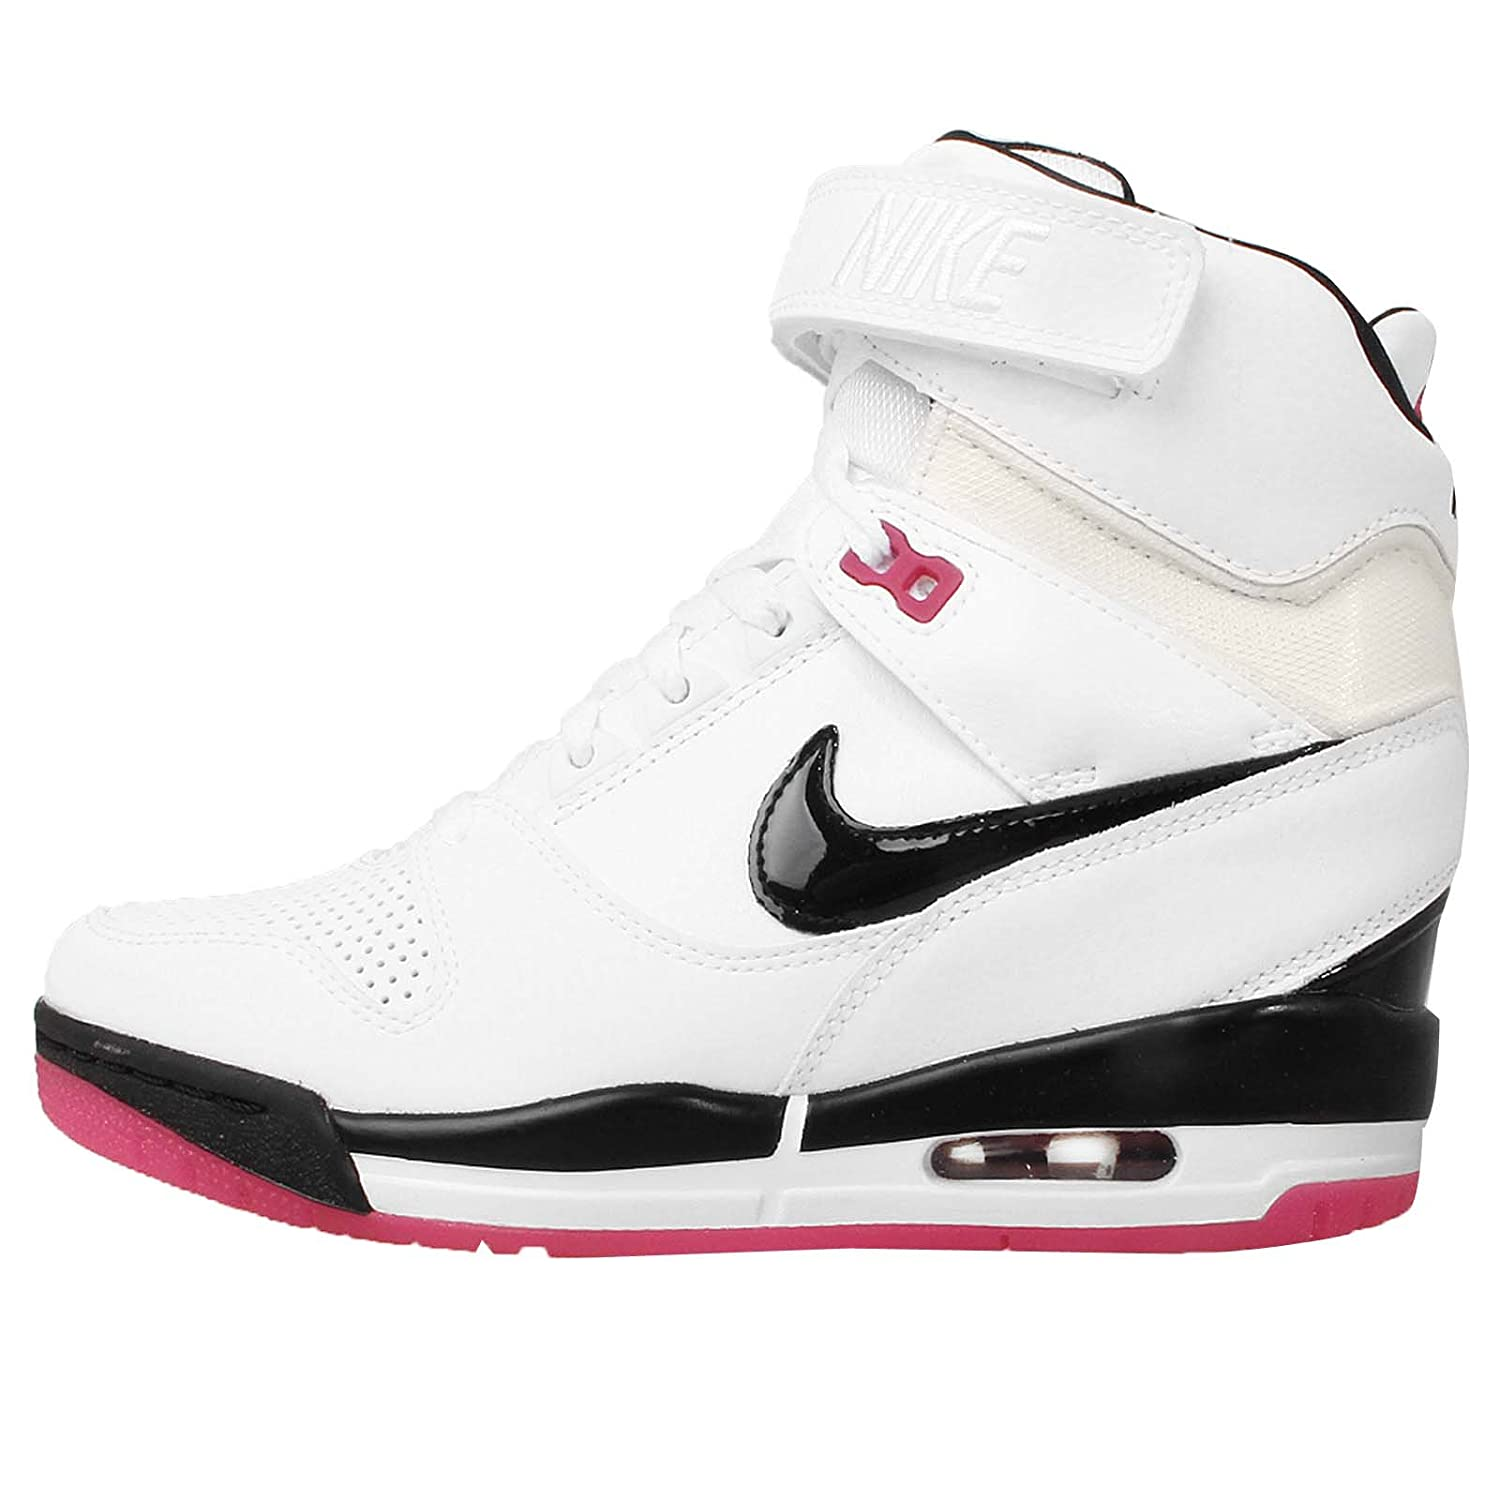 2c55ec635a6d NIKE Womens WMNS Air Revolution Sky White Fireberry Pink Fashion Sneakers  (599410-103)